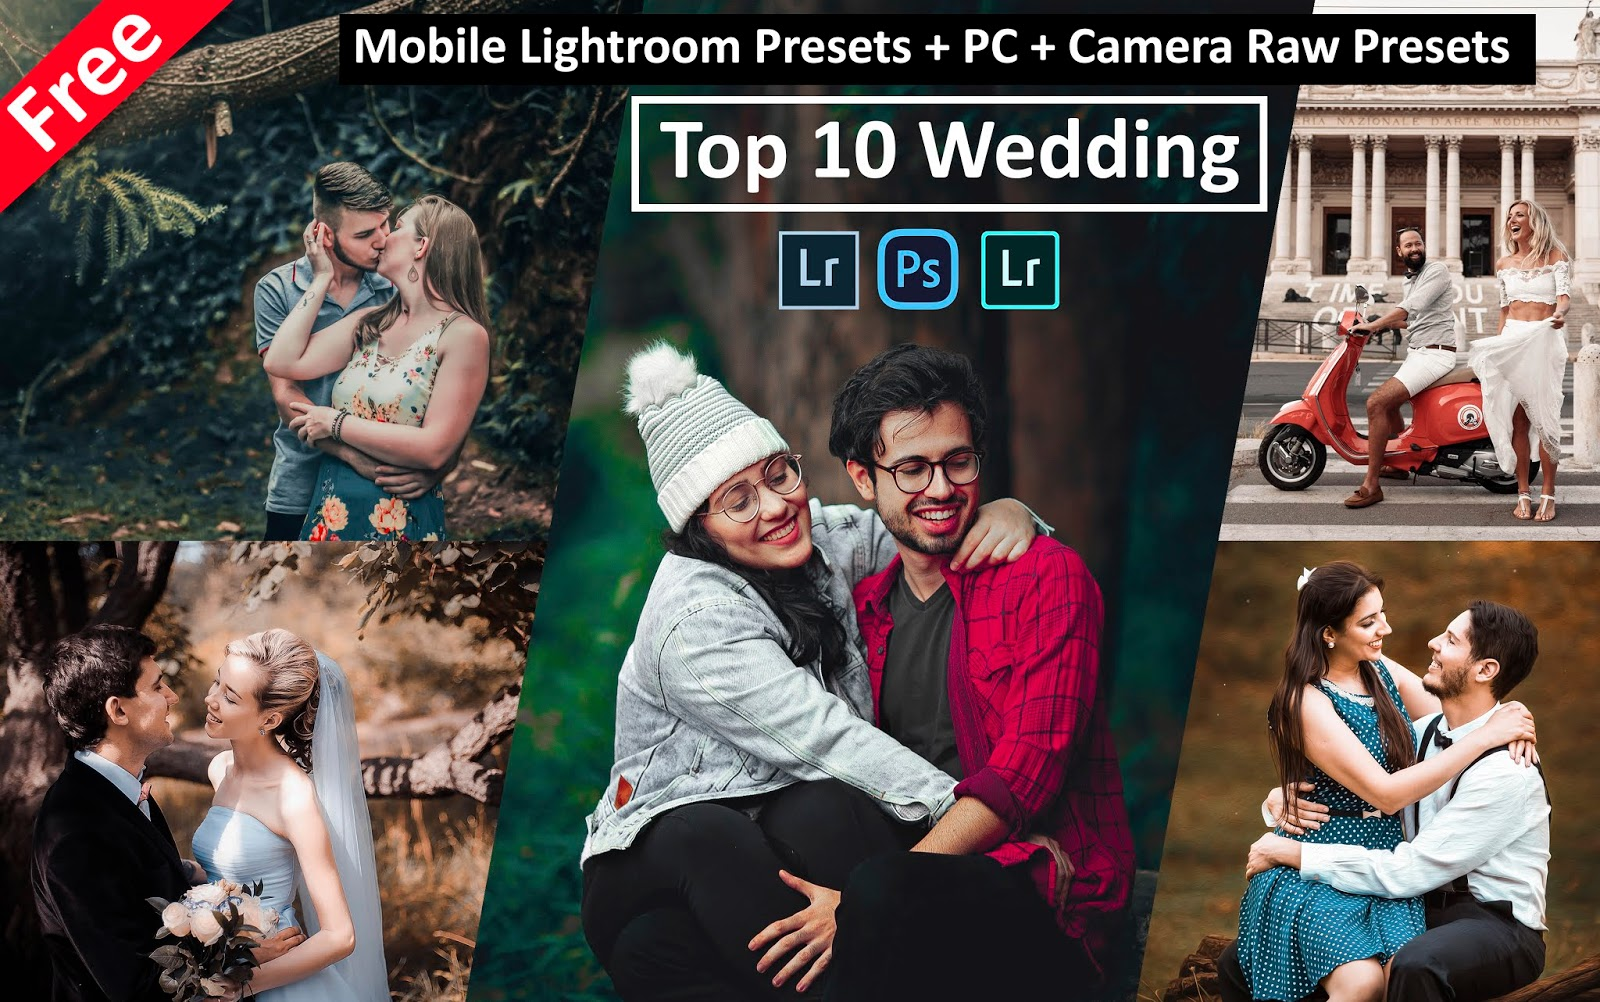 Download Top 10 Wedding Mobile Lightroom Presets for Free | Best Wedding Mobile Lightroom Presets of All Time | How to Edit Wedding Photos in Mobile Lightroom